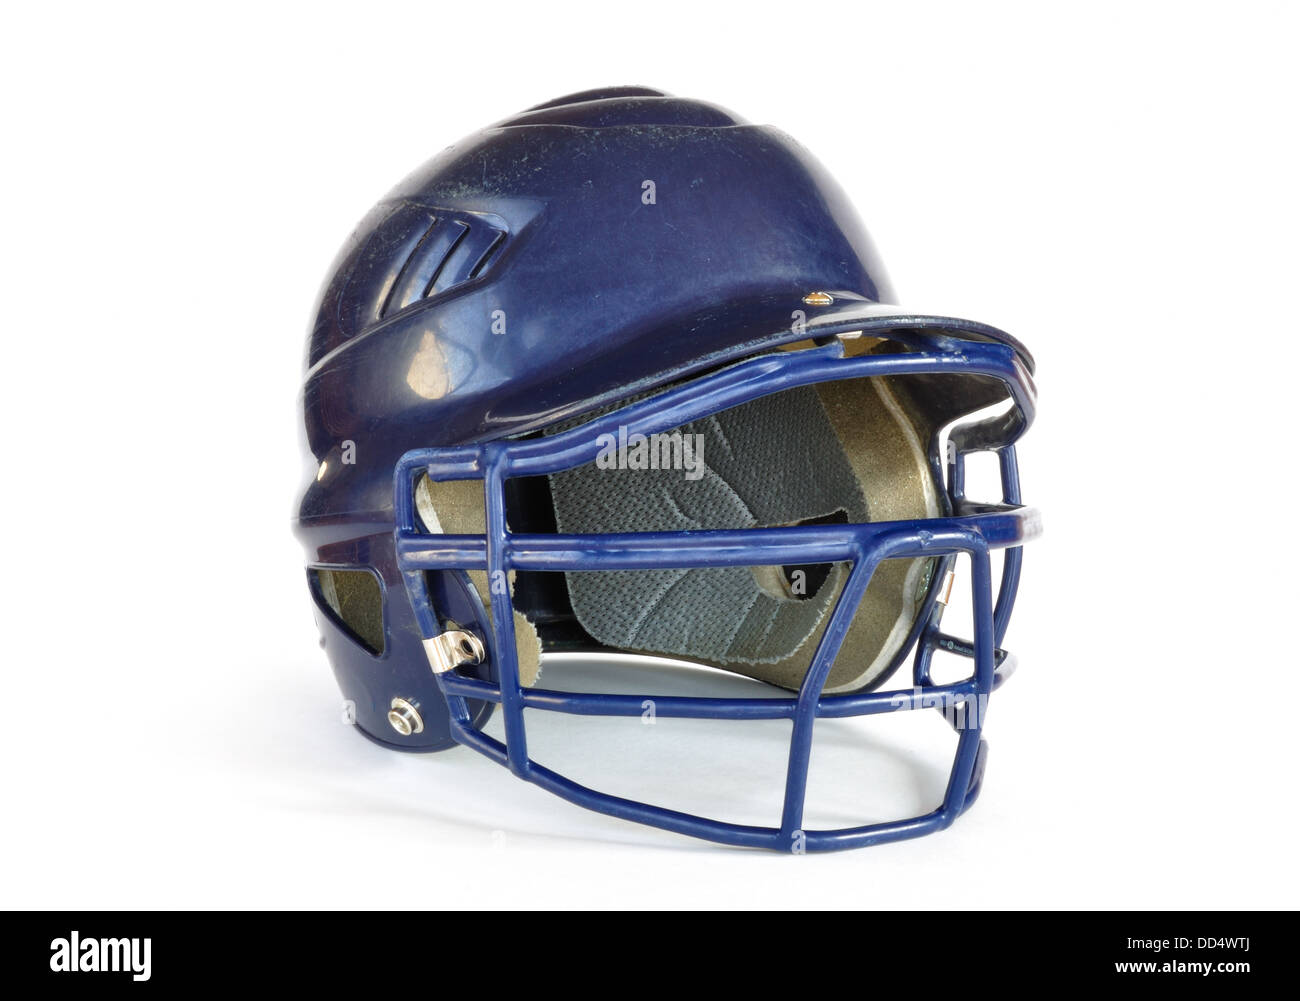 Baseball helmet with facemask isolated on white. - Stock Image